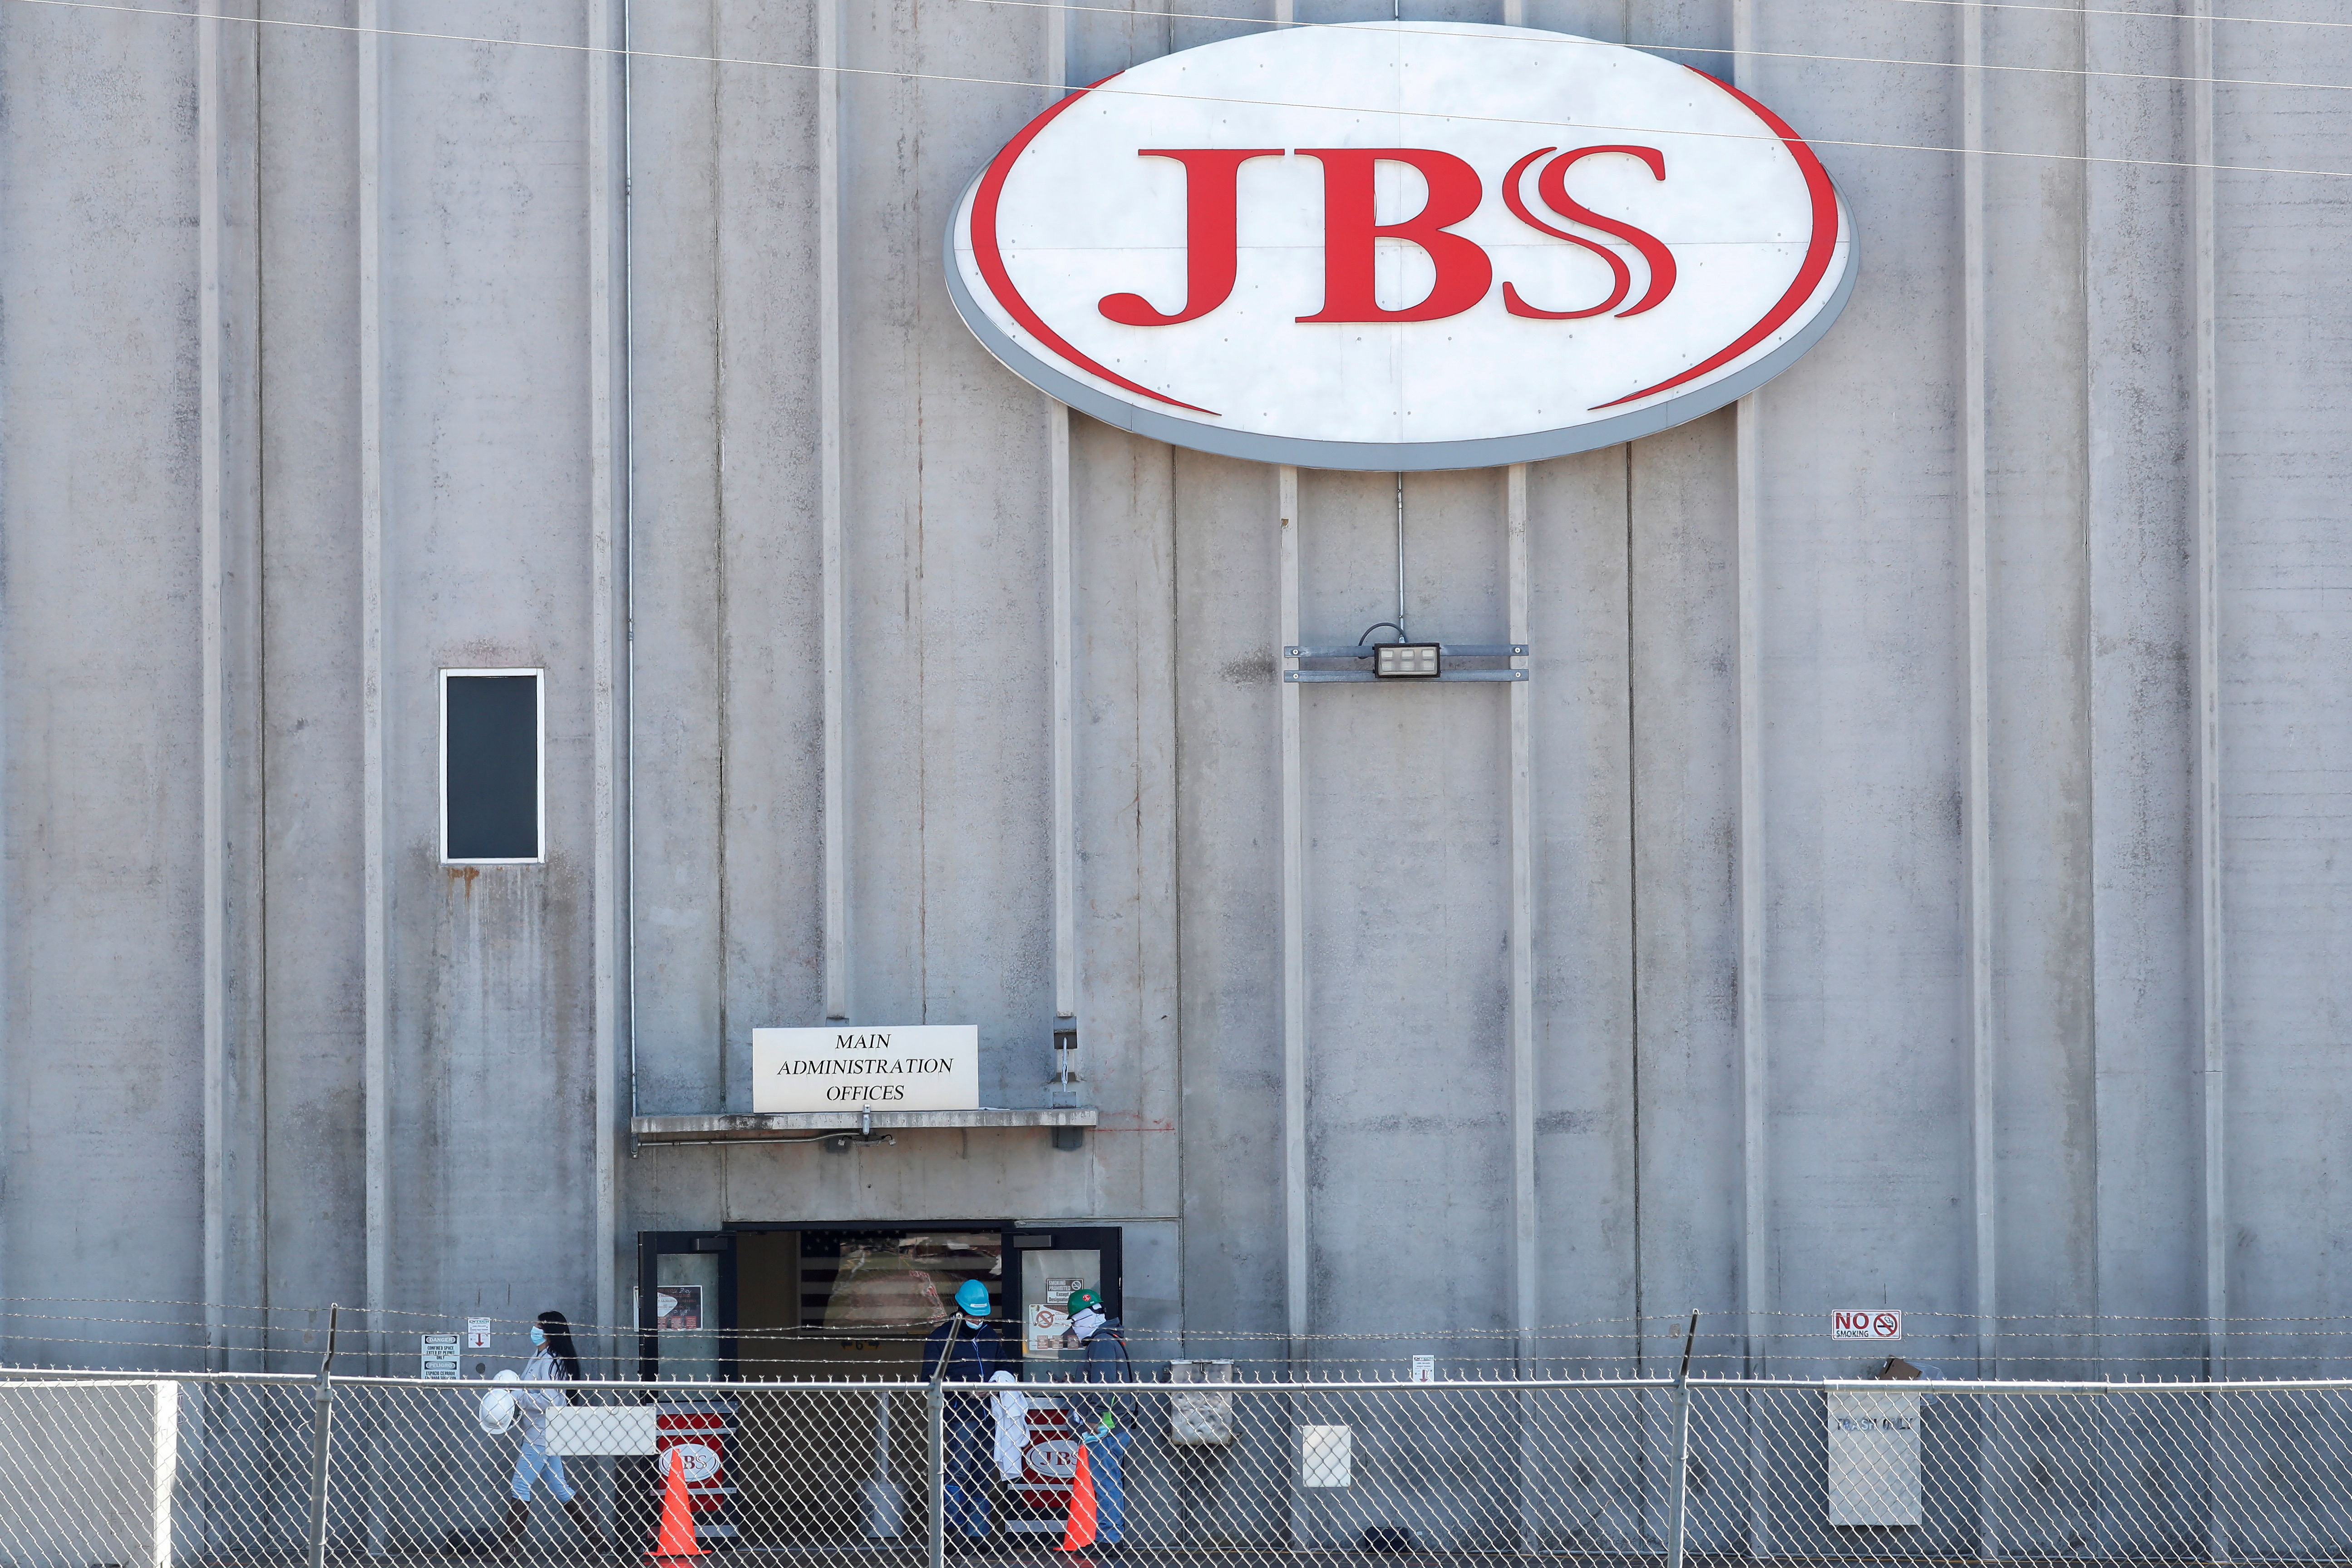 Employees walk around with face masks at the JBS USA meat packing plant. April 14, 2020. REUTERS/Shannon Stapleton